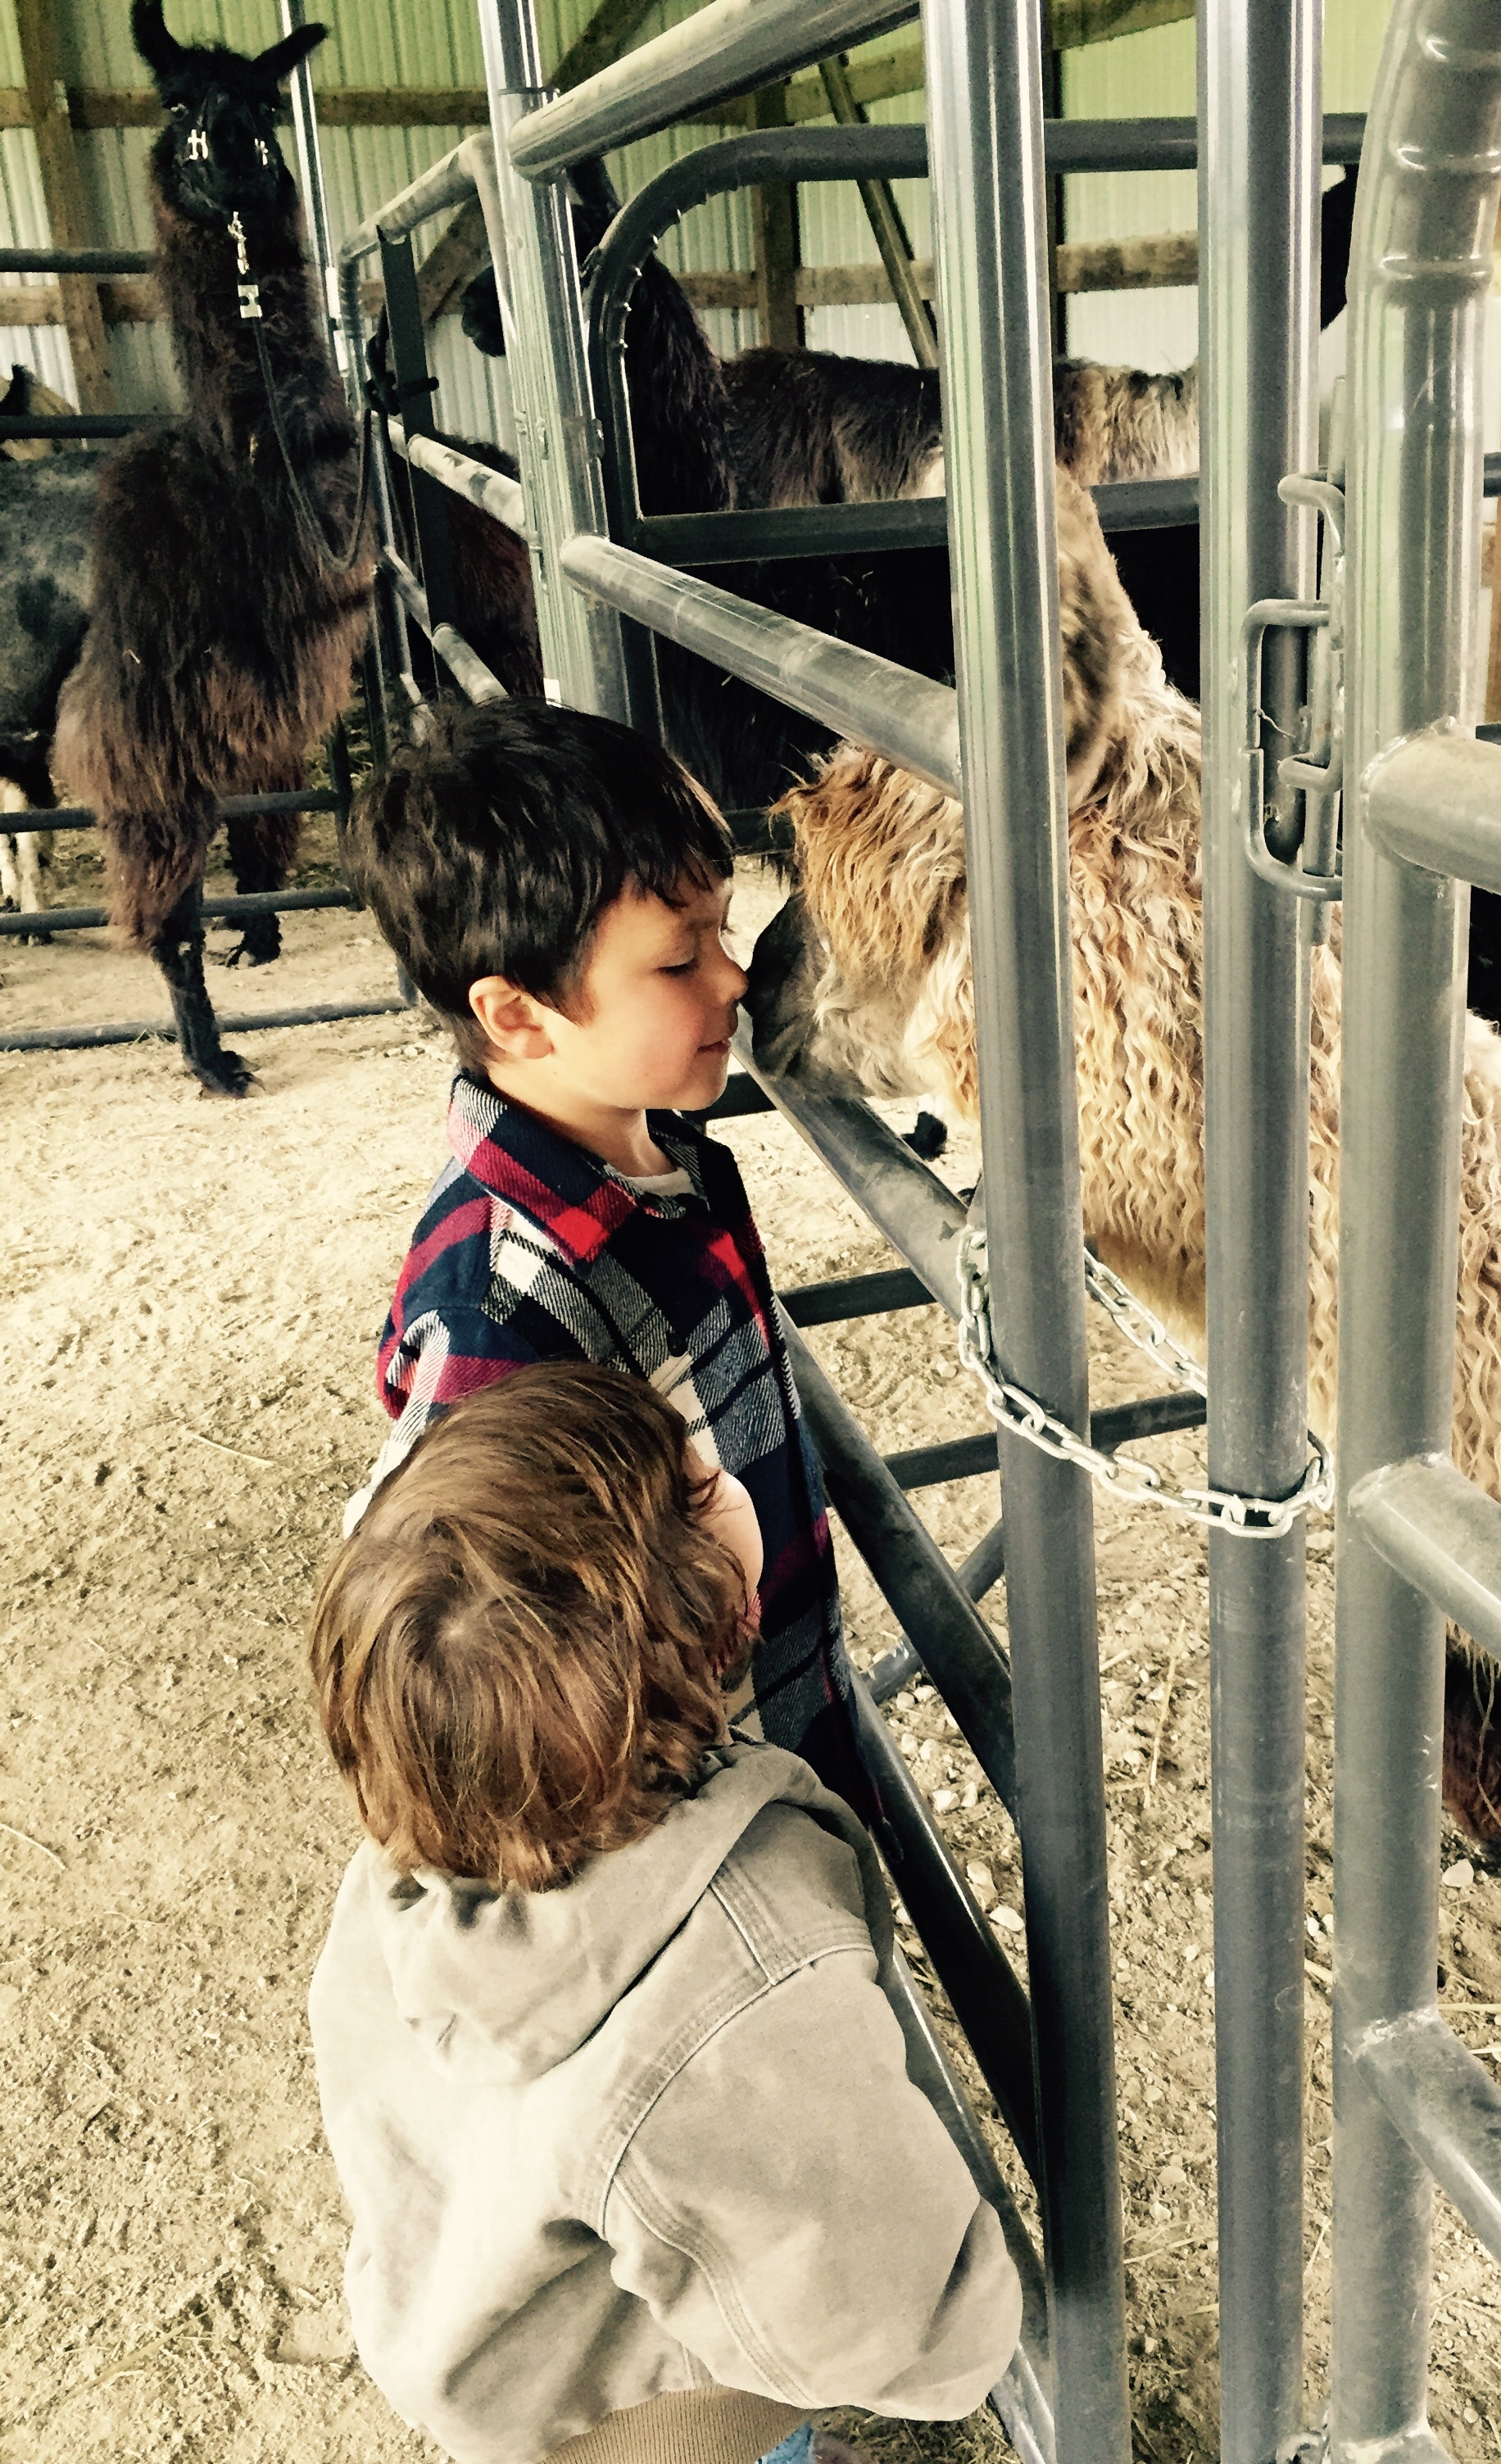 Kids getting kisses from a young curious llama.  Moose is in the back ground keeping watch.